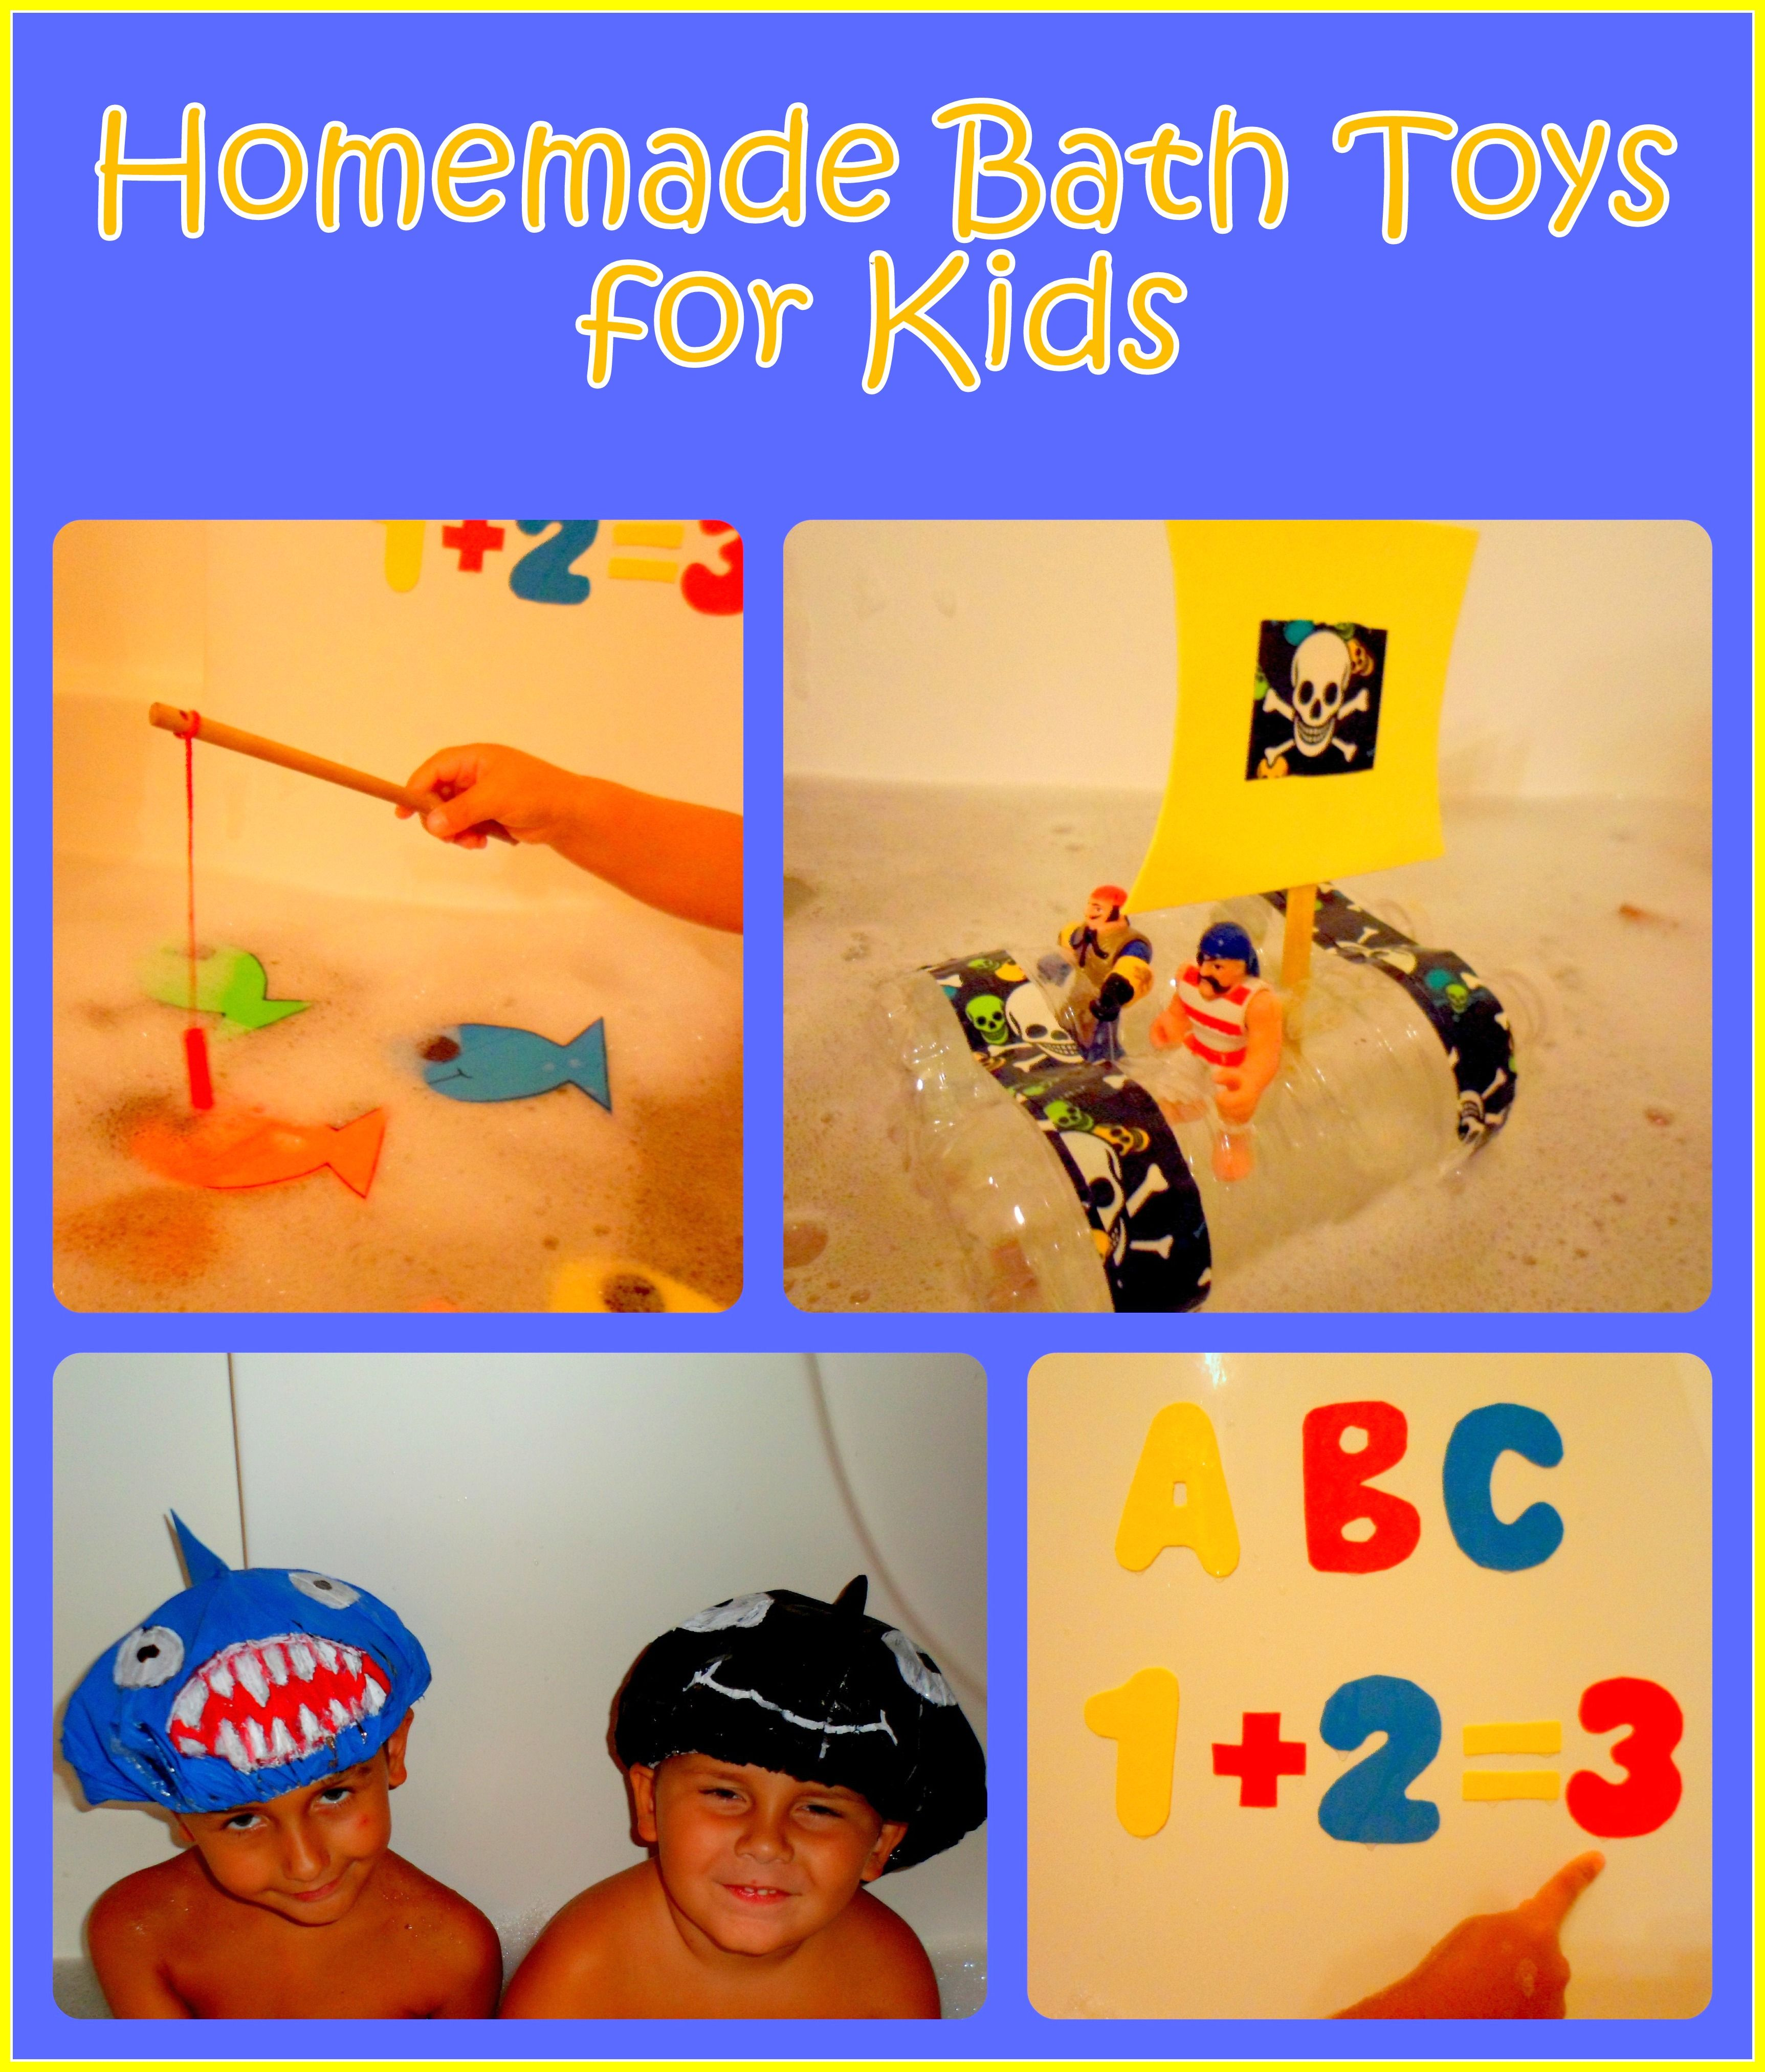 How to Make Homemade Bath Toys for Kids